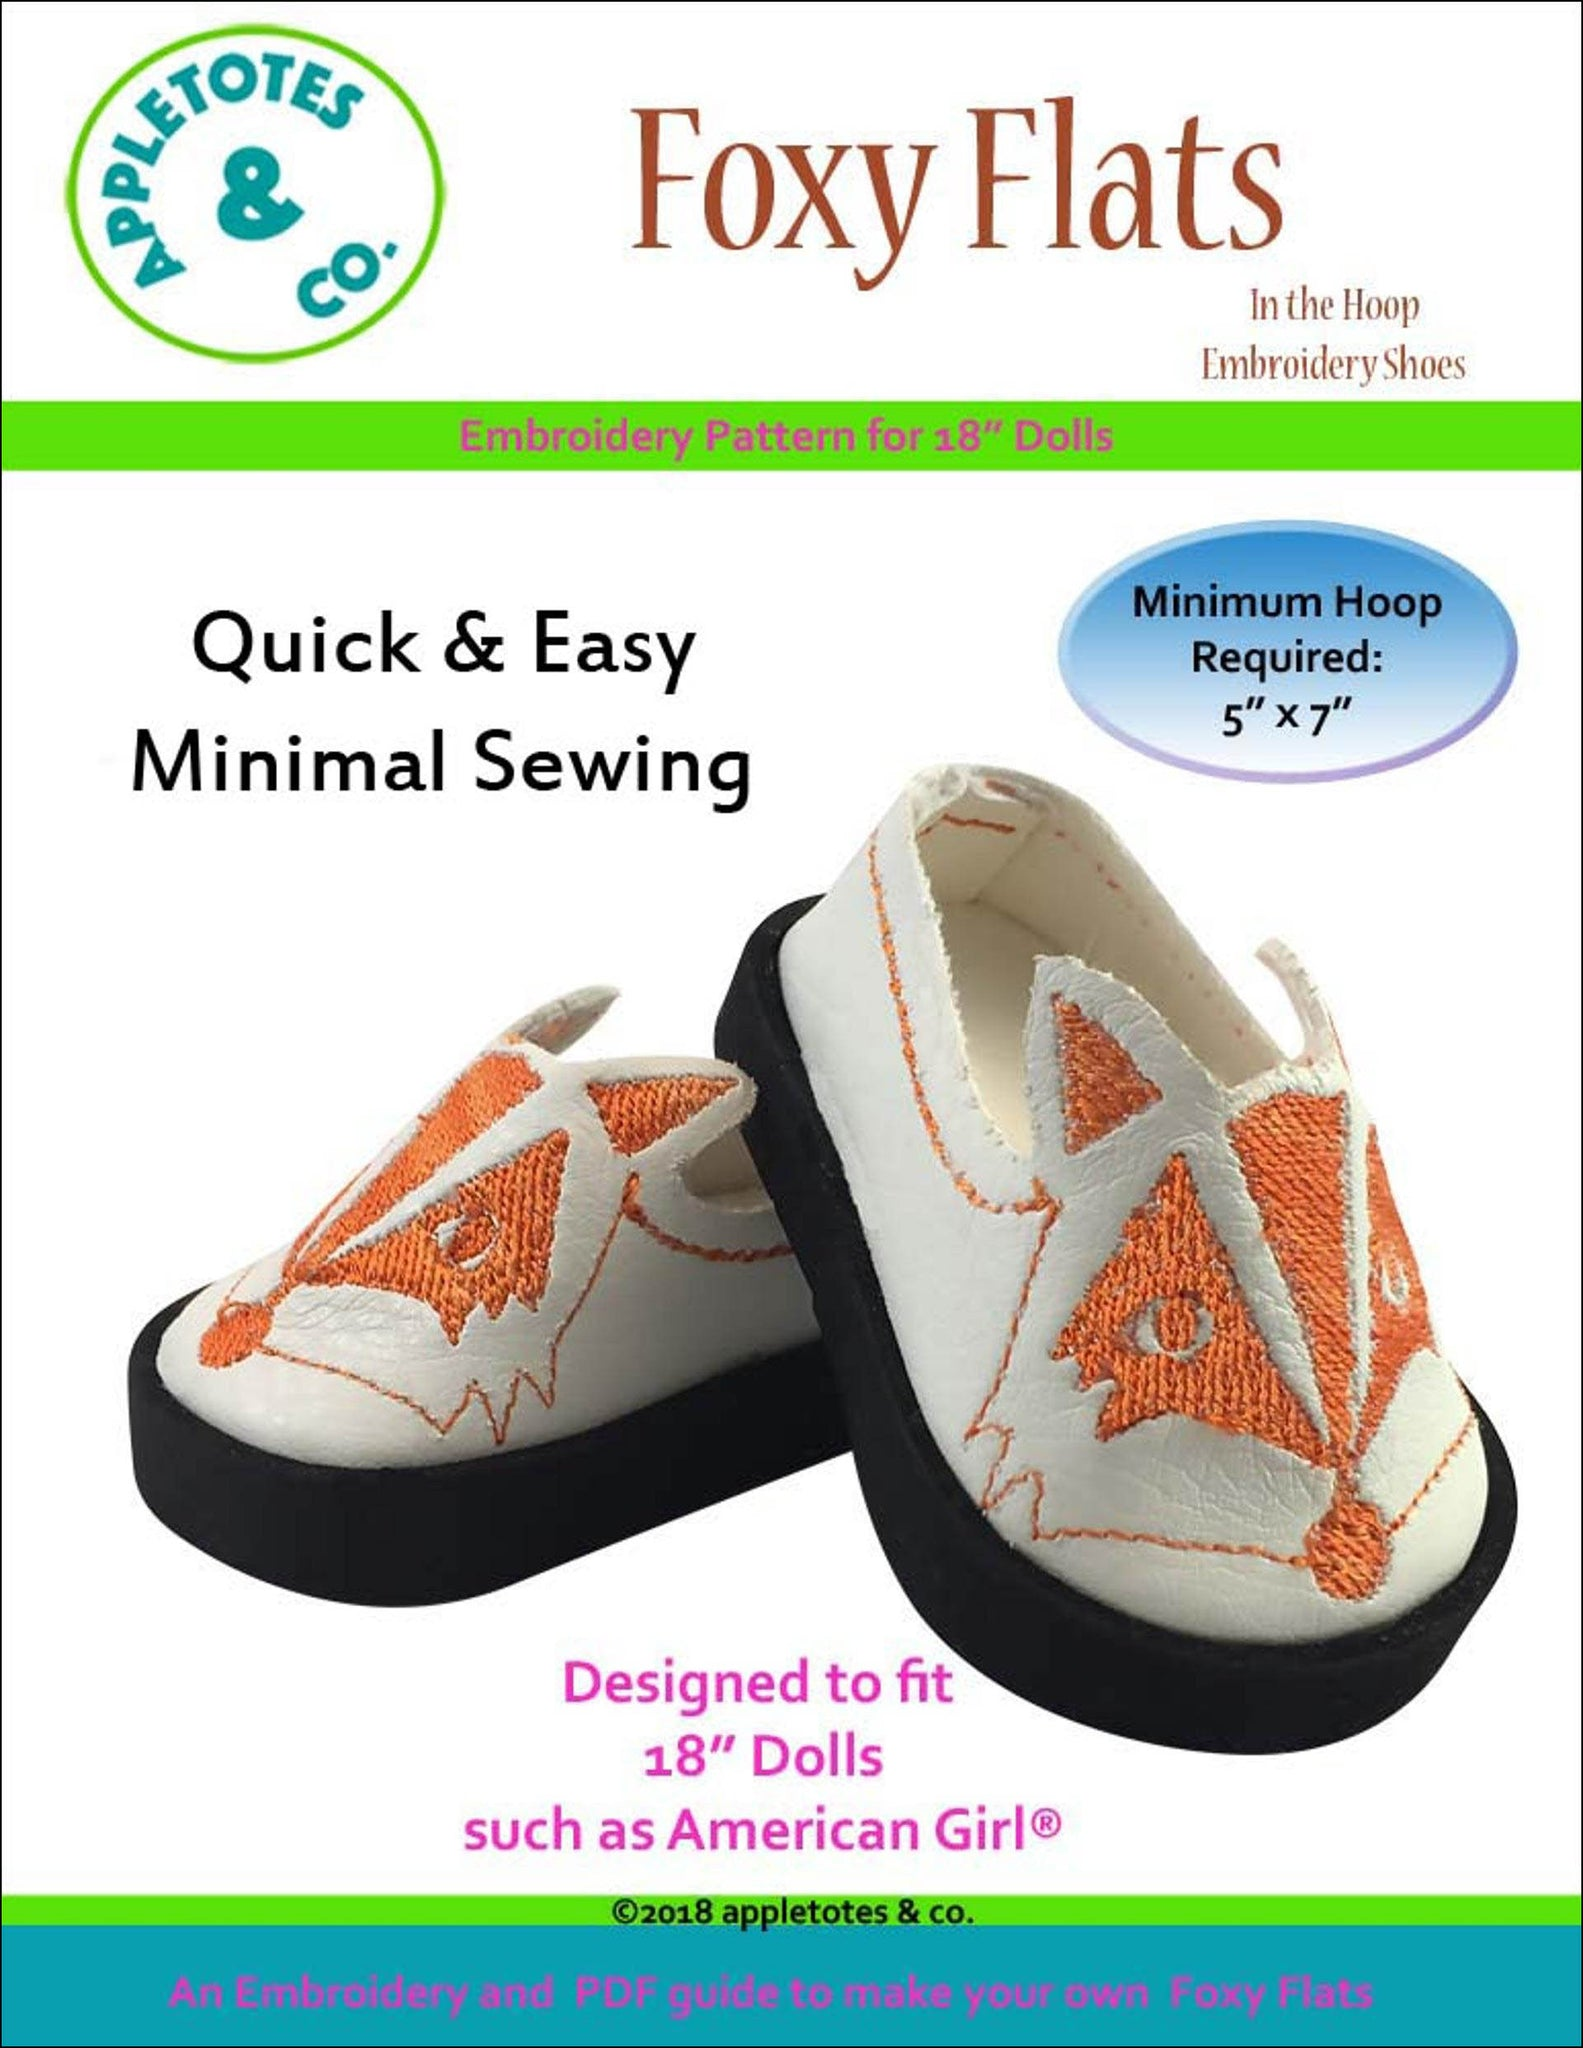 "Foxy Flats ITH Embroidery Patterns for 18"" Dolls"